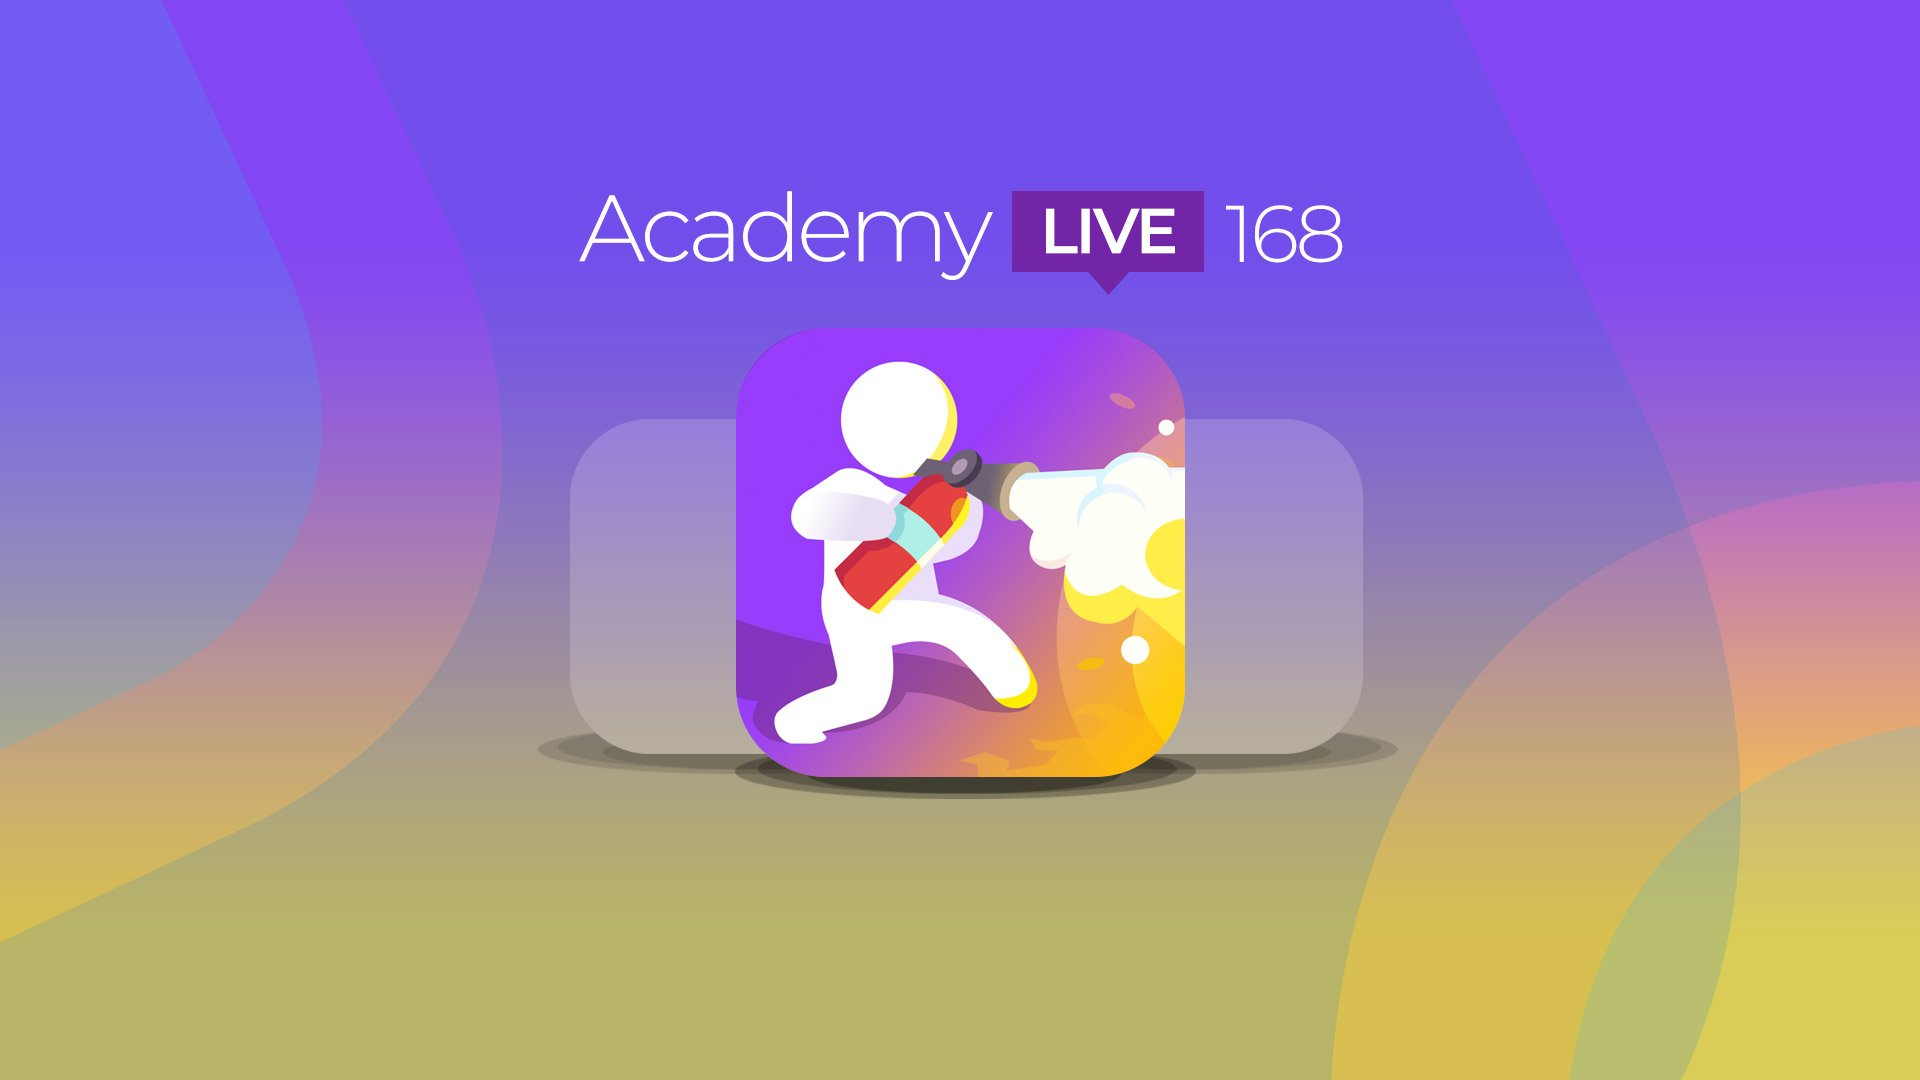 RisingHigh Academy Live - Mobile Game Dev Show - 168